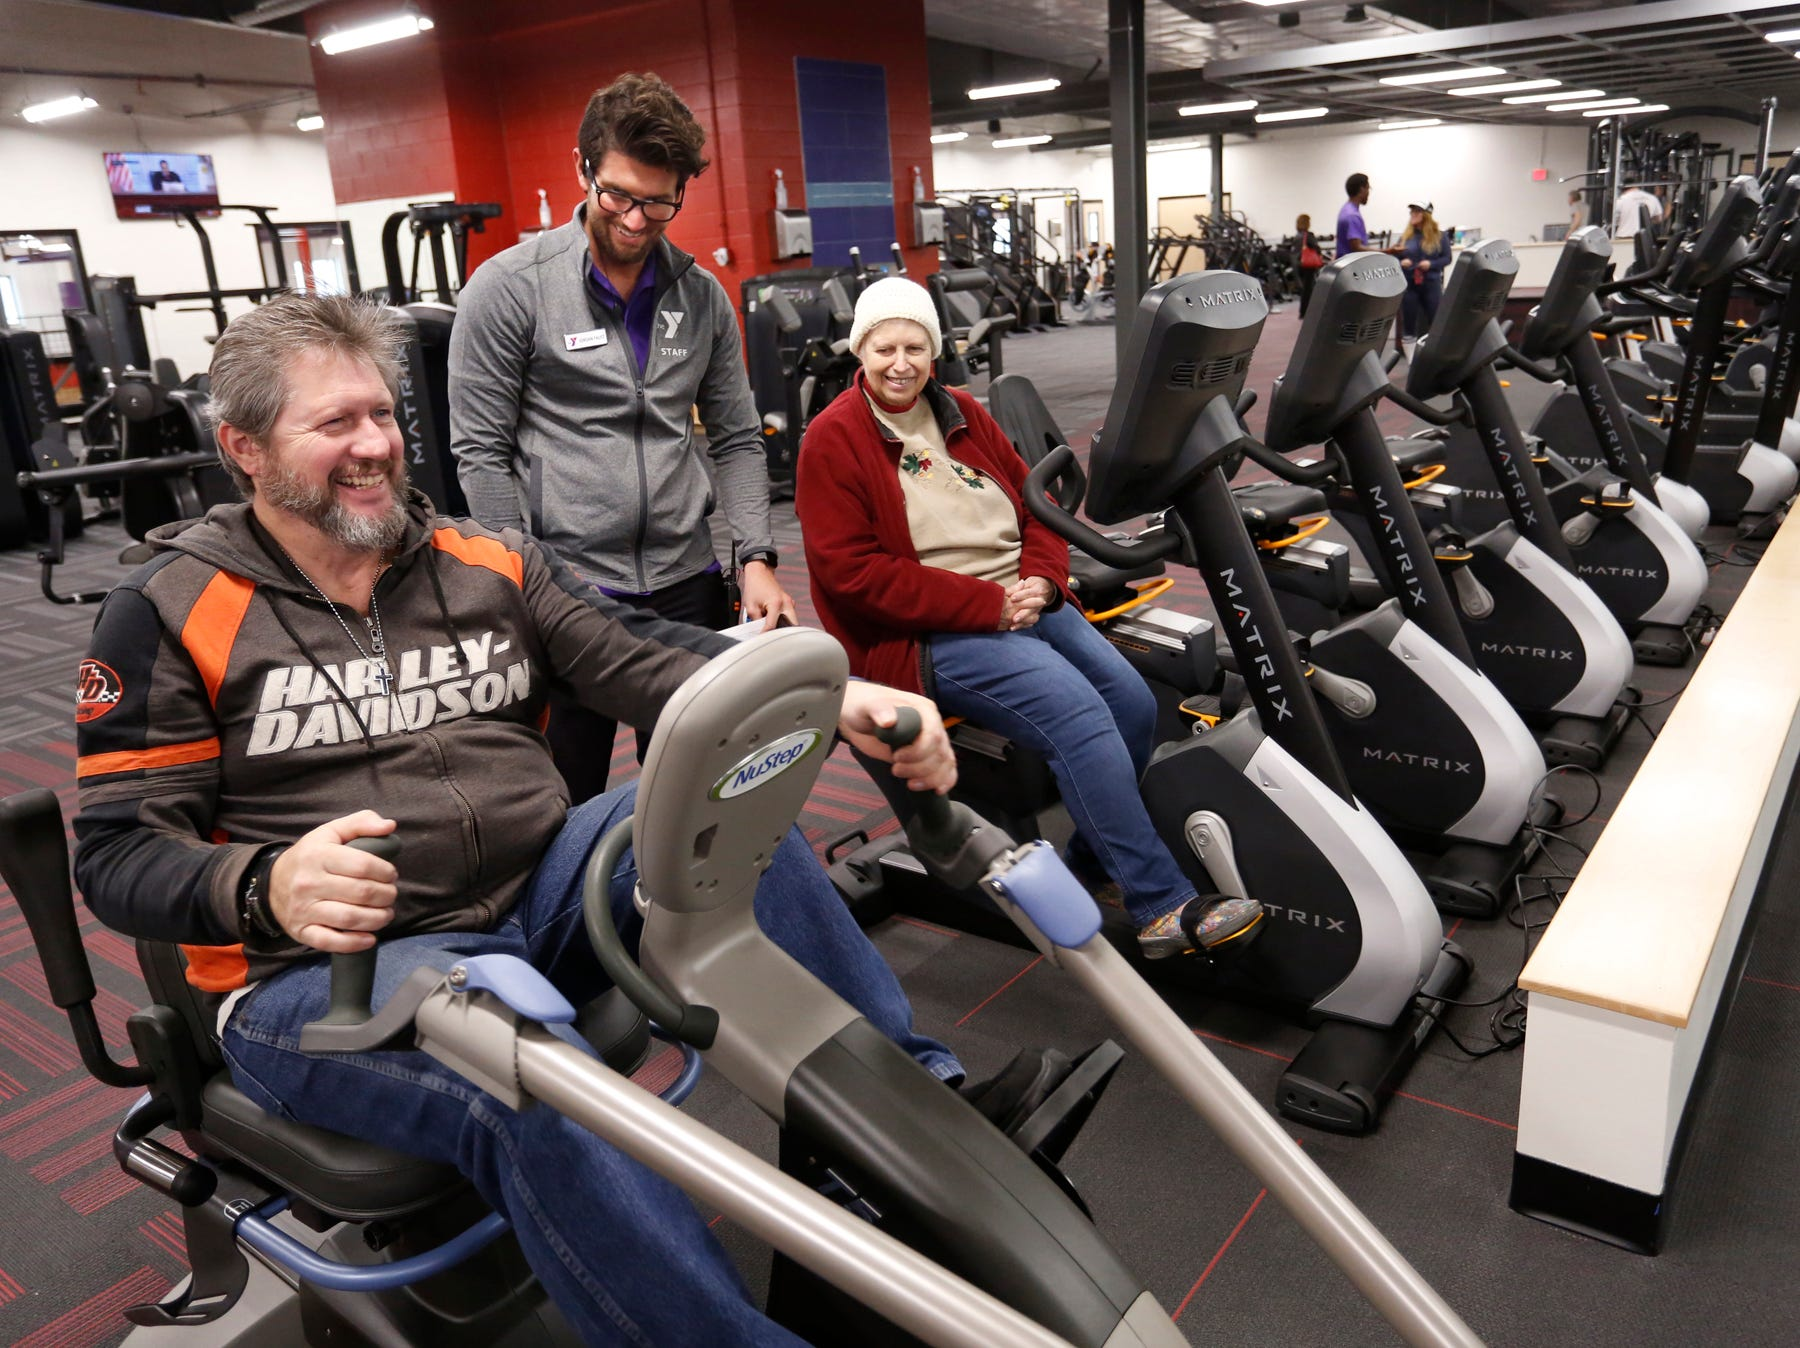 Jordan Faust, center, introduces Rick and Barbara Fields to the NuStep rehab bike and the Matrix Bike in the James and Cari Gothard Wellness Center Thursday, December 6, 2018, at the new Lafayette Family YMCA, 3001 S. Creasy Lane in Lafayette. The facility celebrated its grand opening Thursday.